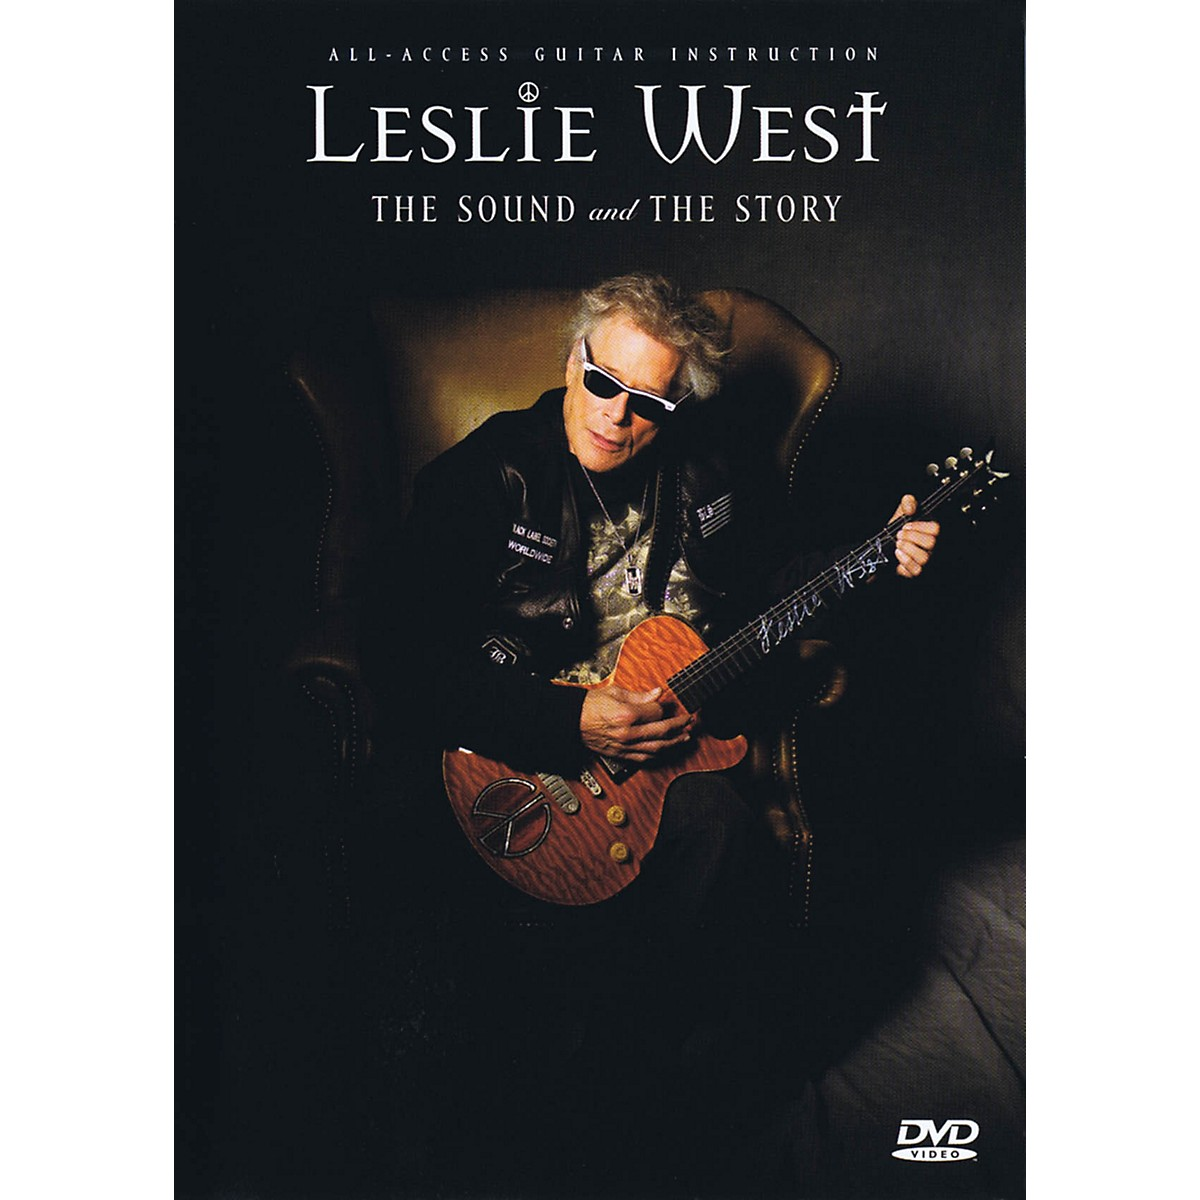 Fret12 Leslie West: The Sound And The Story - Guitar Instruction / Documentary Dvd (pal Ed.) Instructional/Guitar/DVD DVD by Leslie West